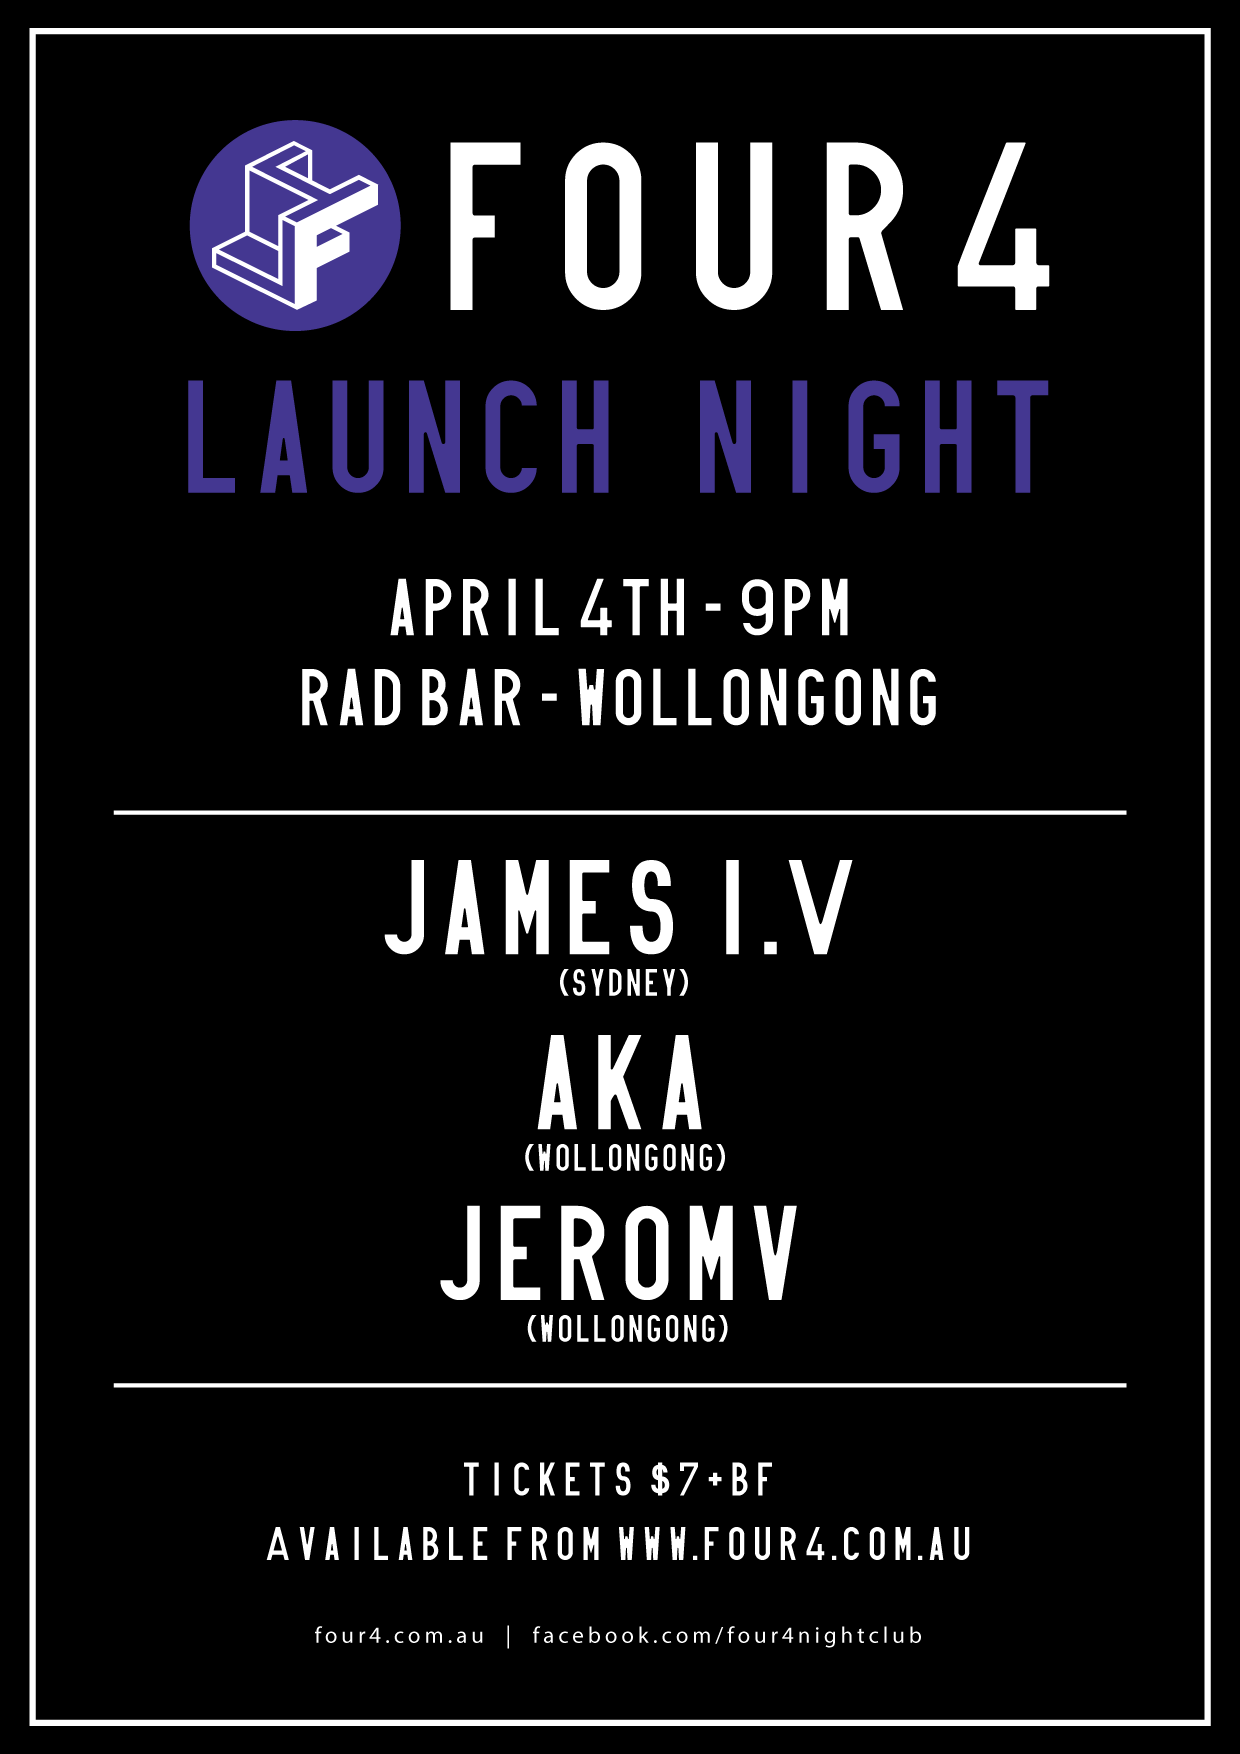 launch night poster